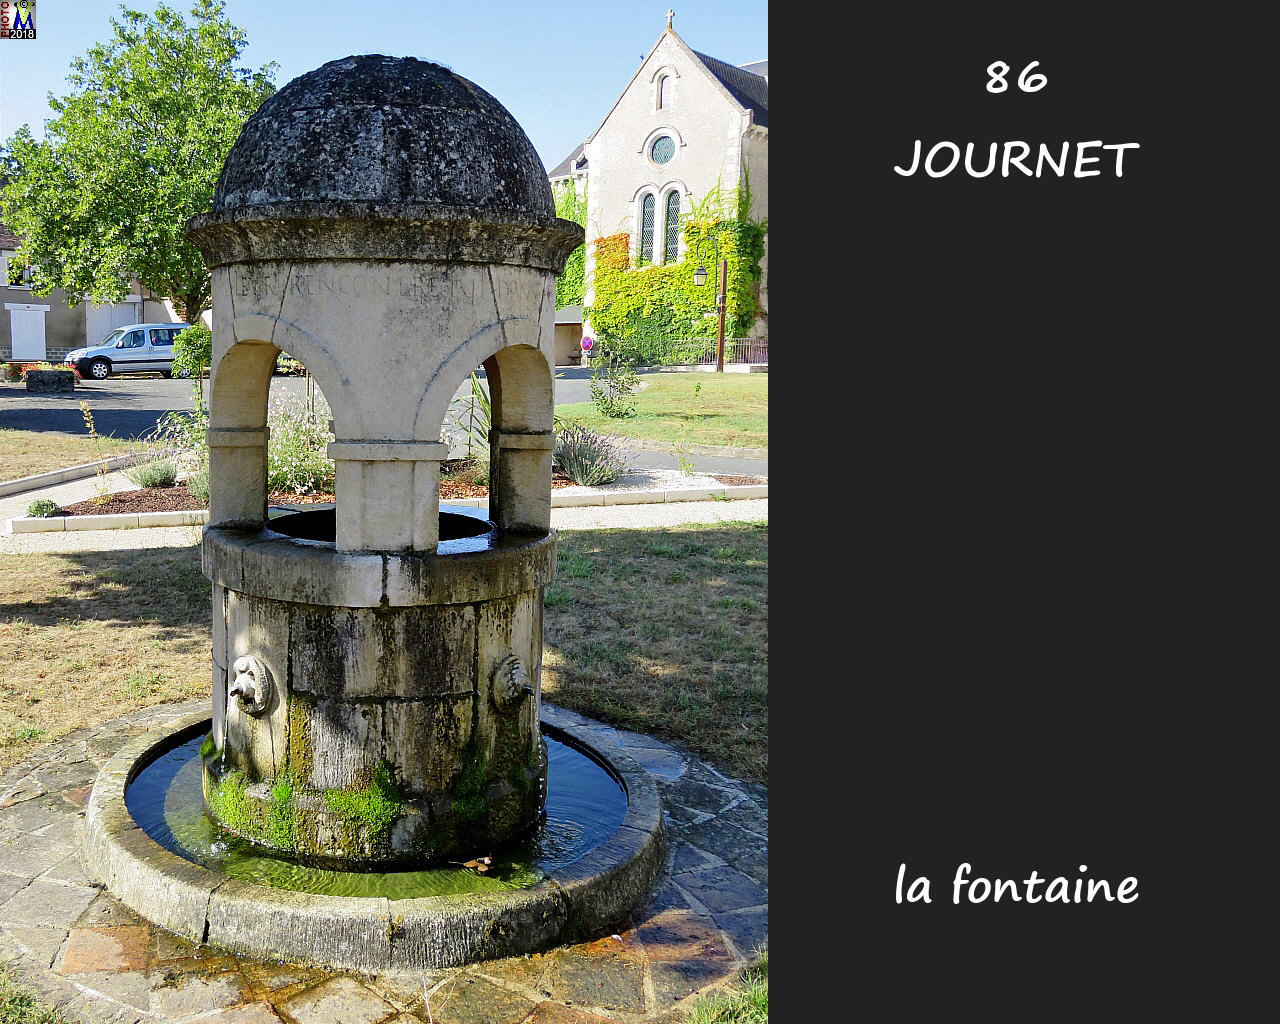 86JOURNET_fontaine_100.jpg